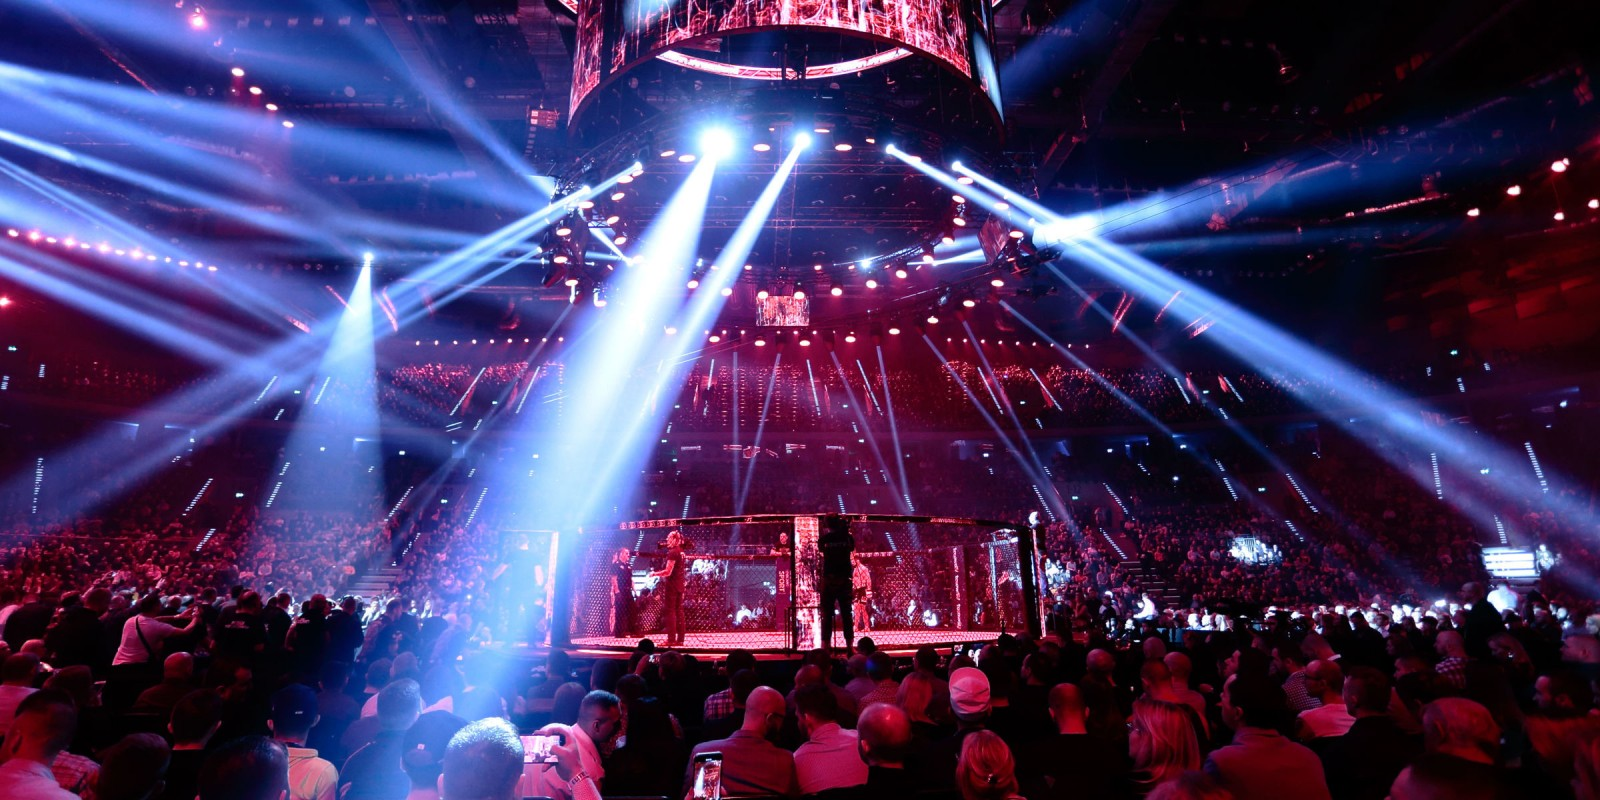 Images from KSW 52 in Gliwice, Poland.